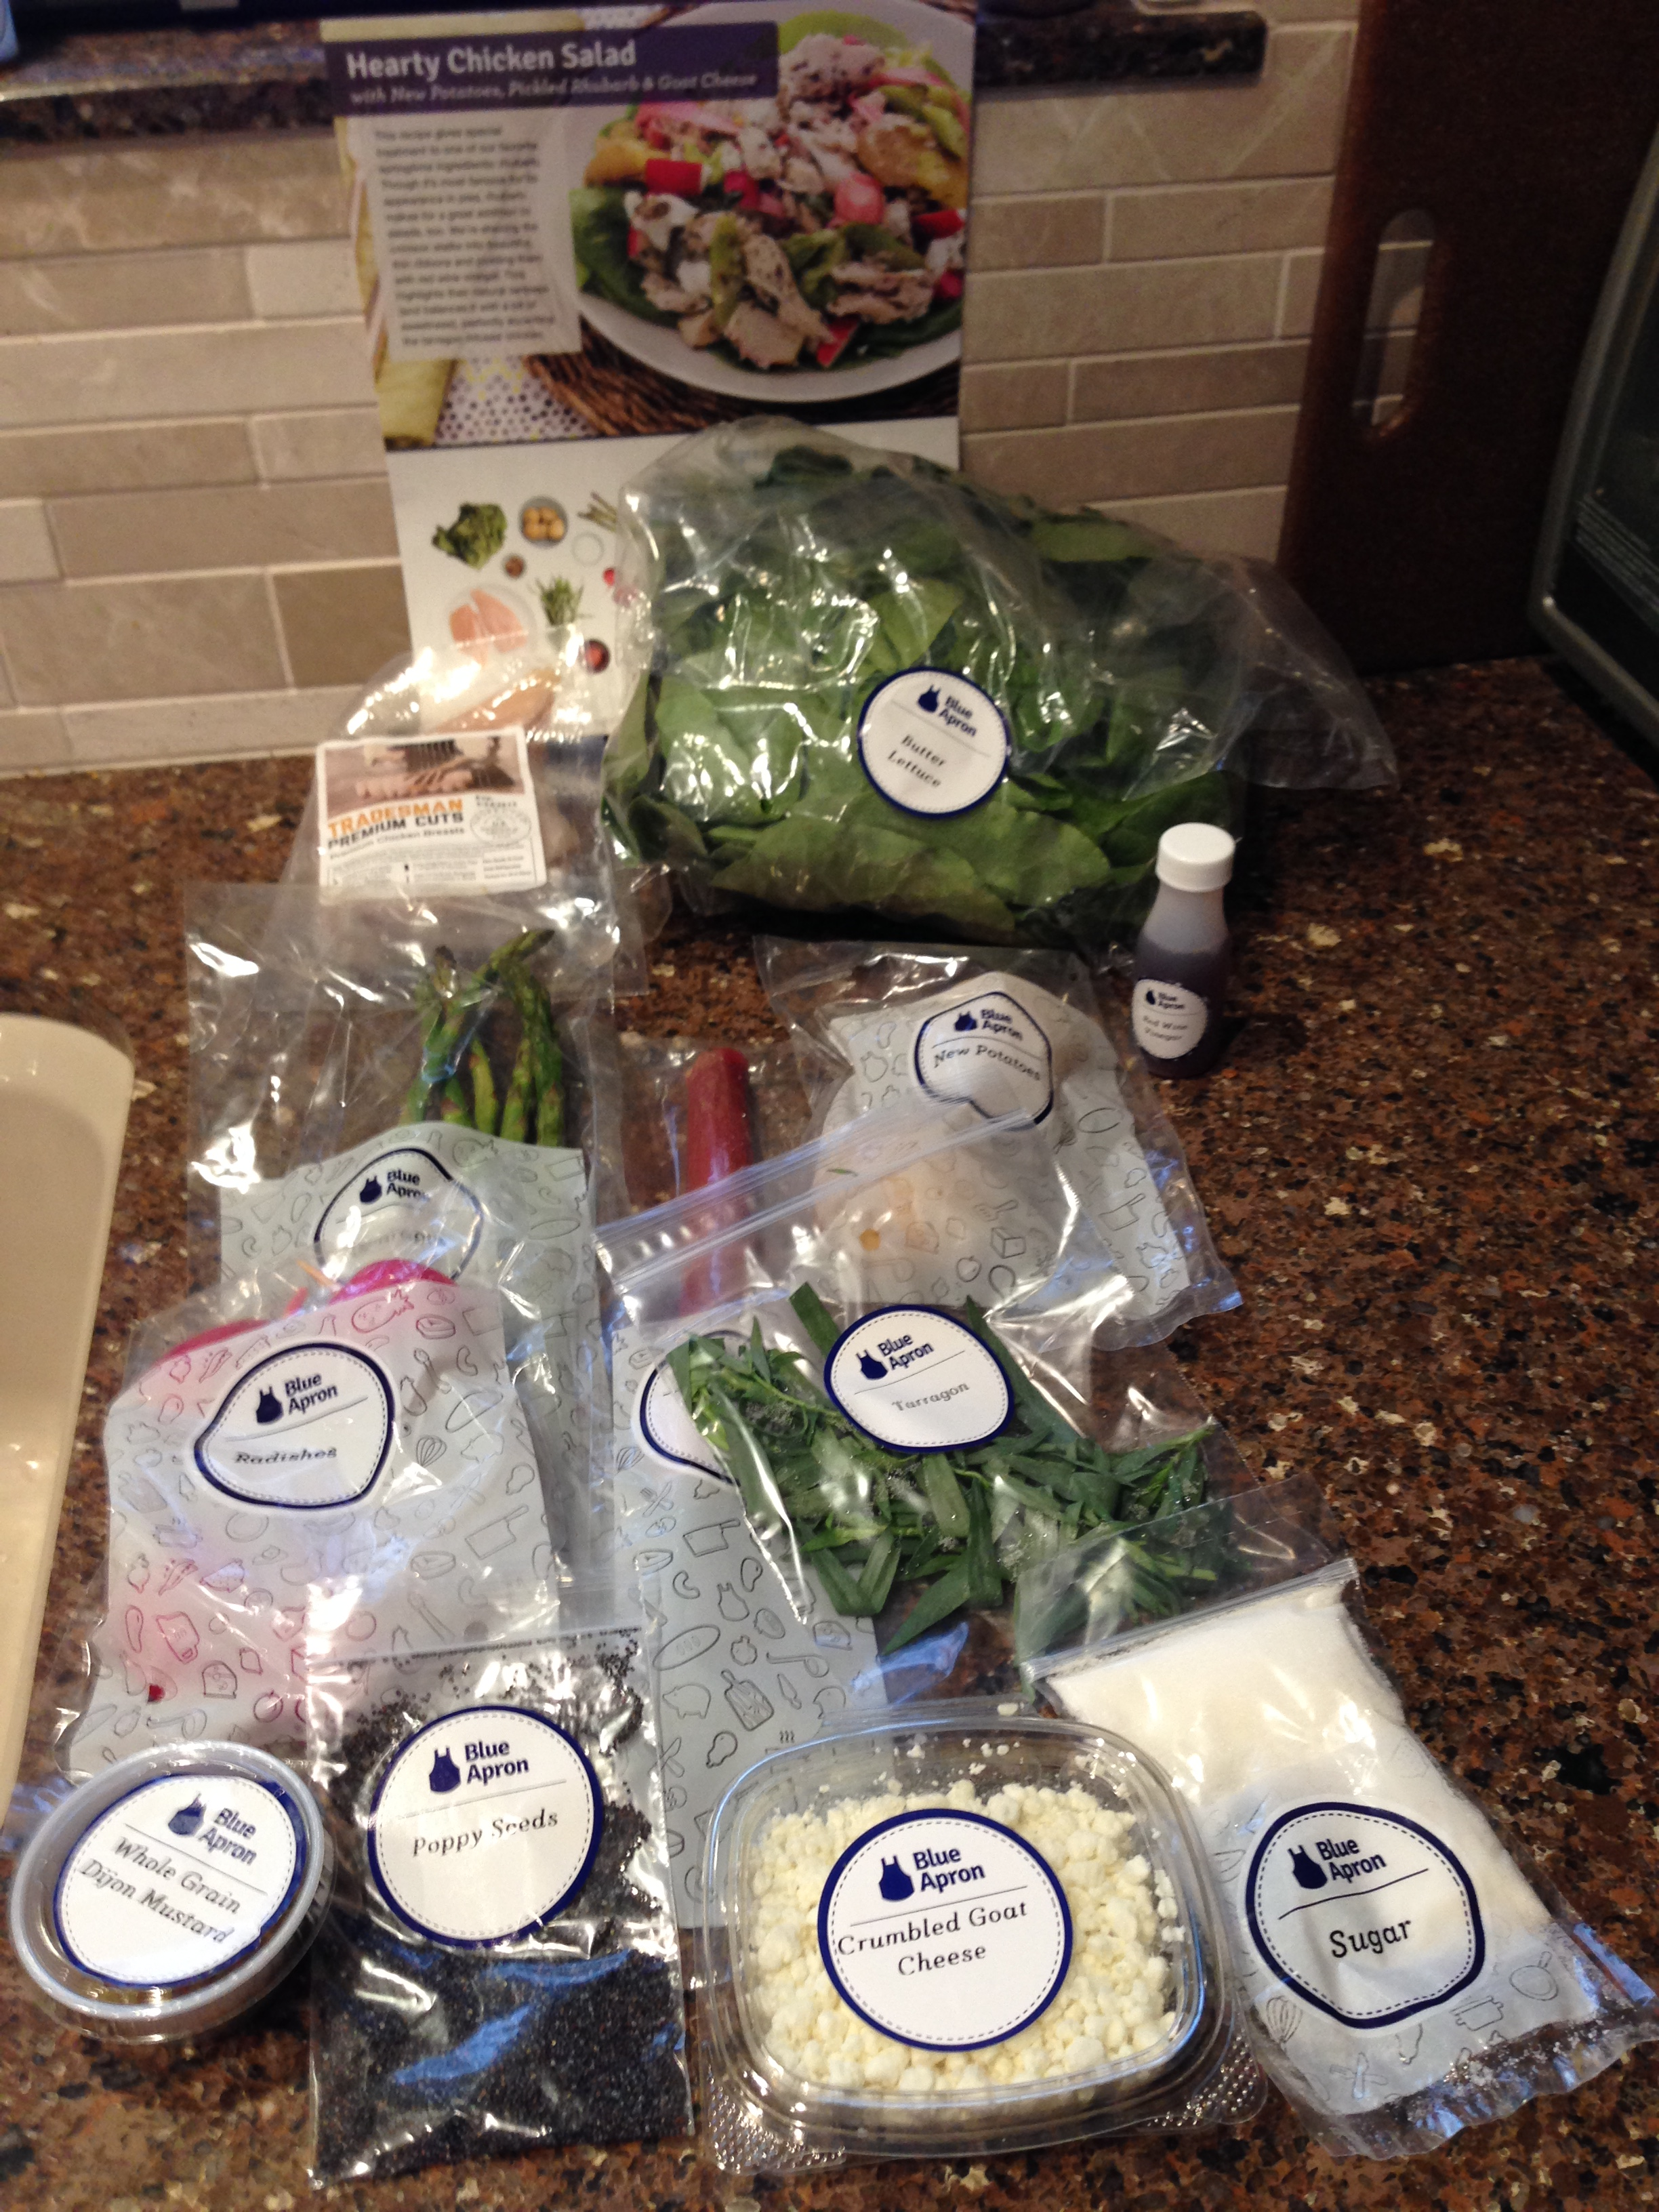 Blue apron quick pickles - 2015 05 13 Hearty Chicken Salad1